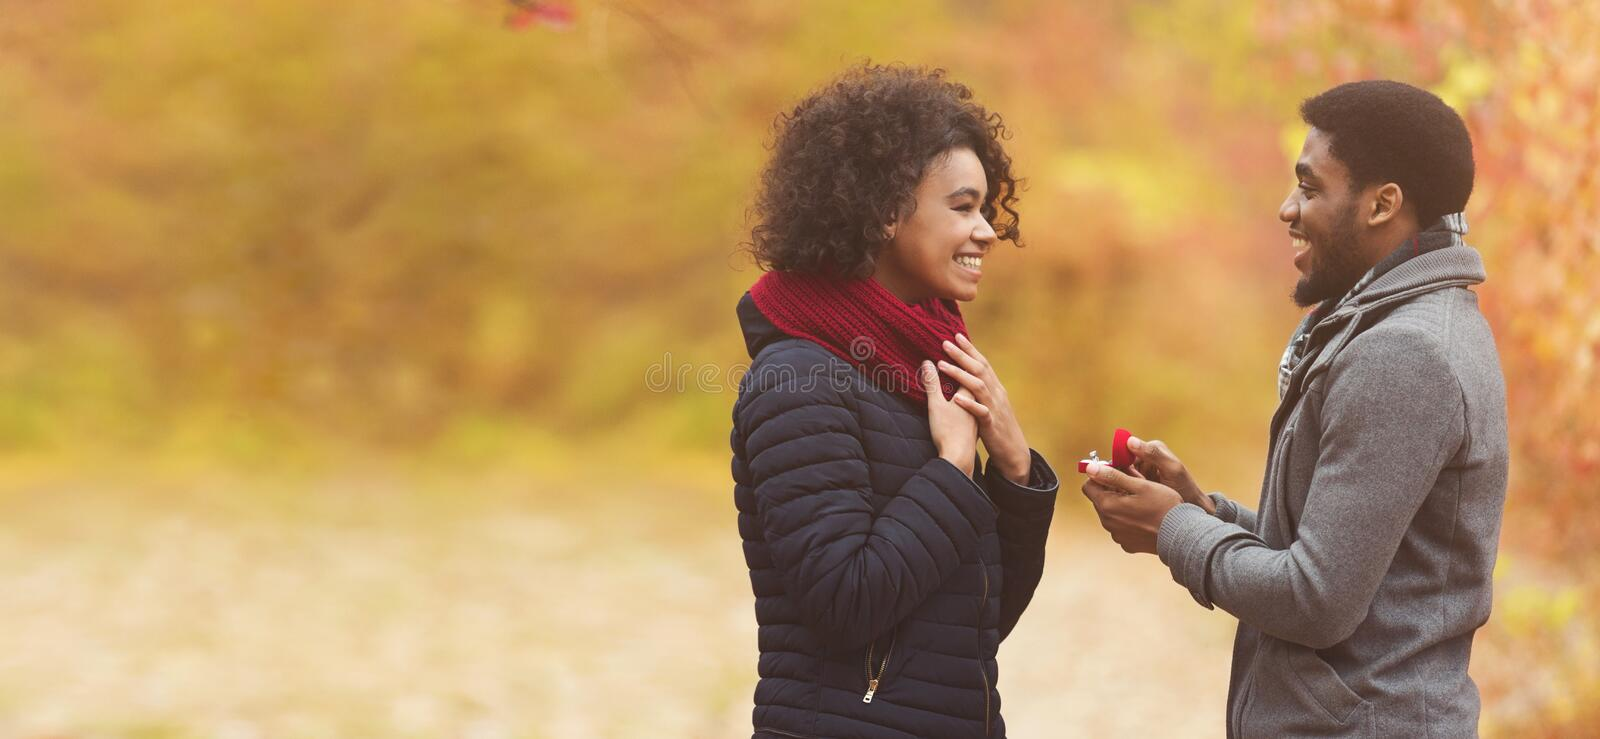 Romantic man proposing to woman in autumn park royalty free stock photos